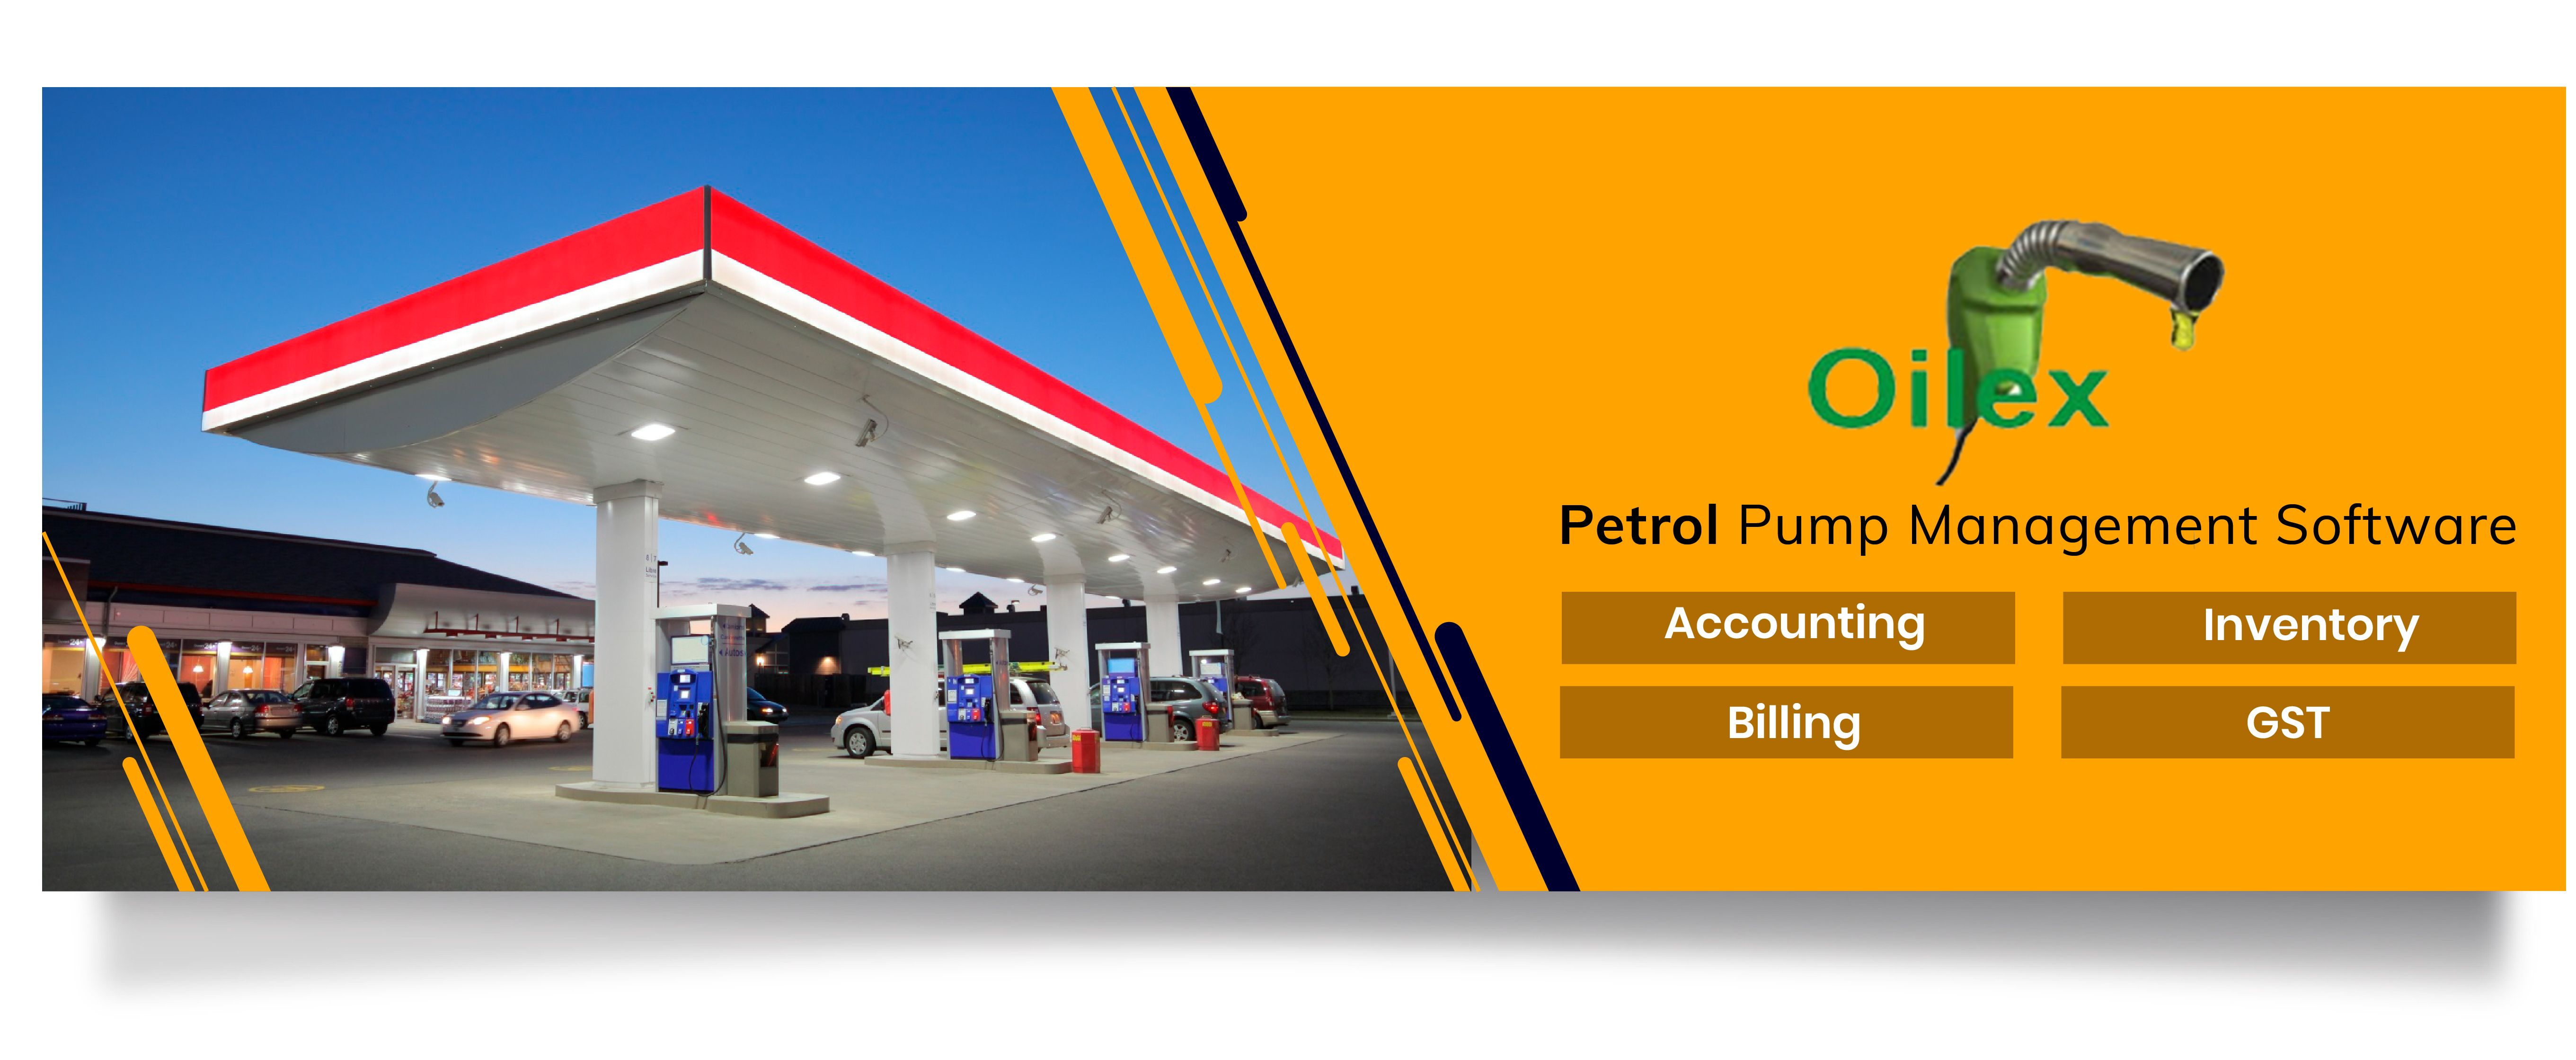 Oilex petrol pump software is a package of accounting and